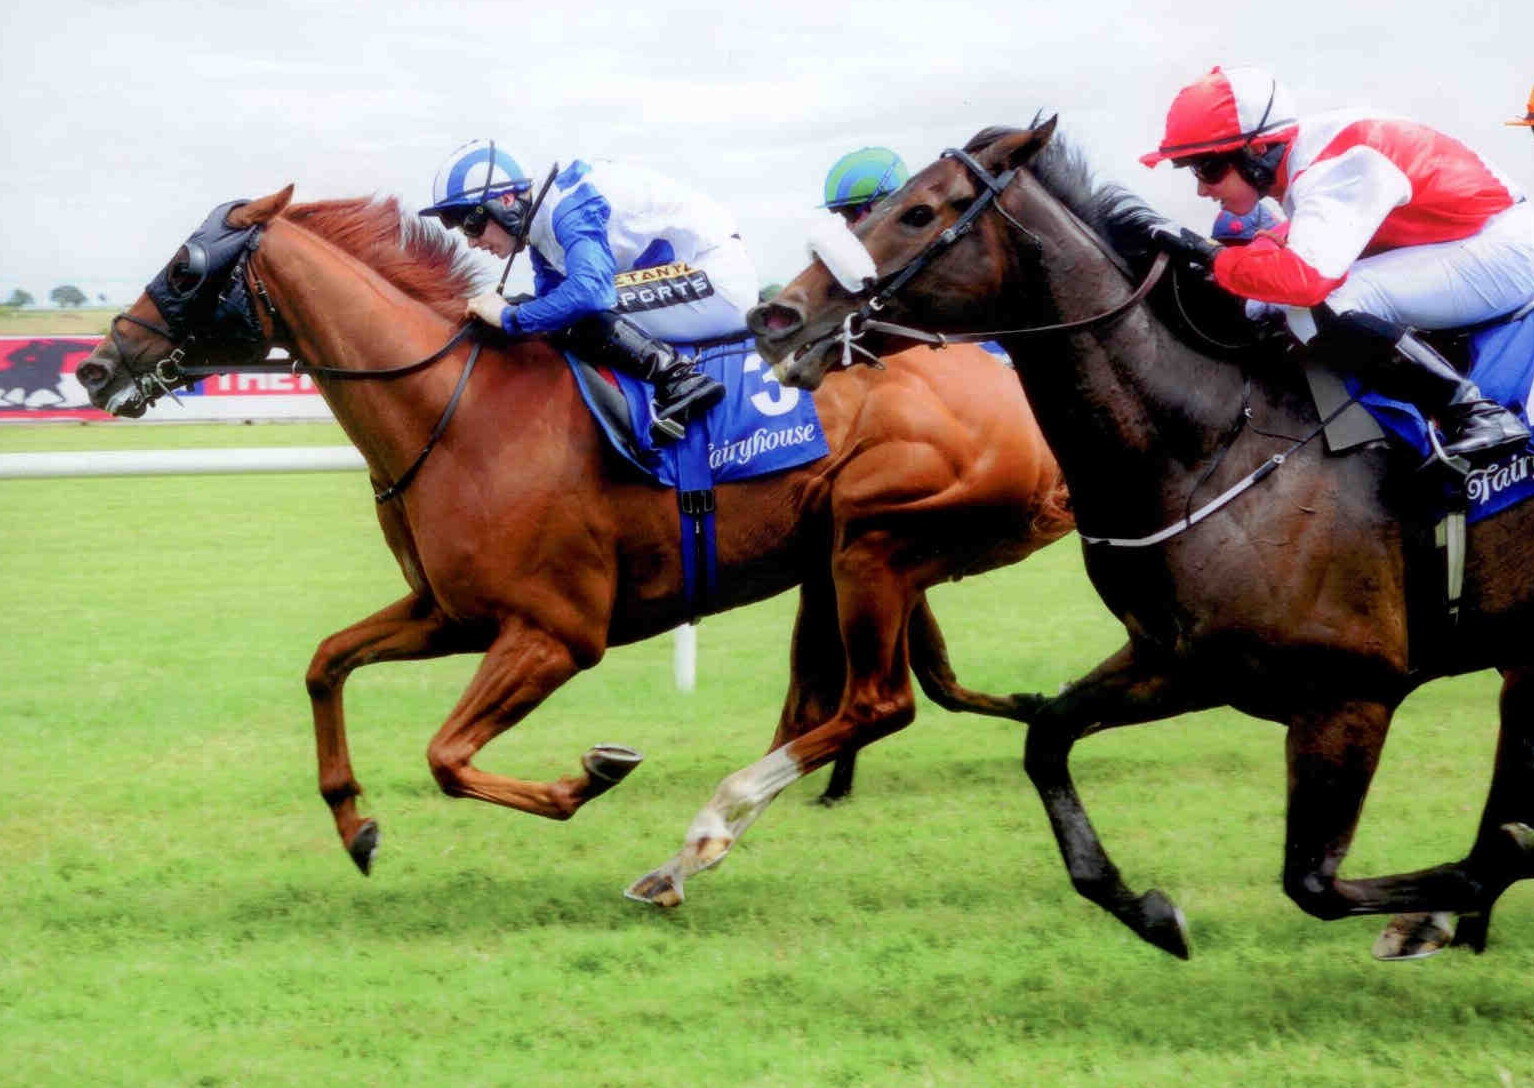 TRINITY FORCE battles back to provide Ger and Colin with a double at Fairyhouse on July 5th, 2015